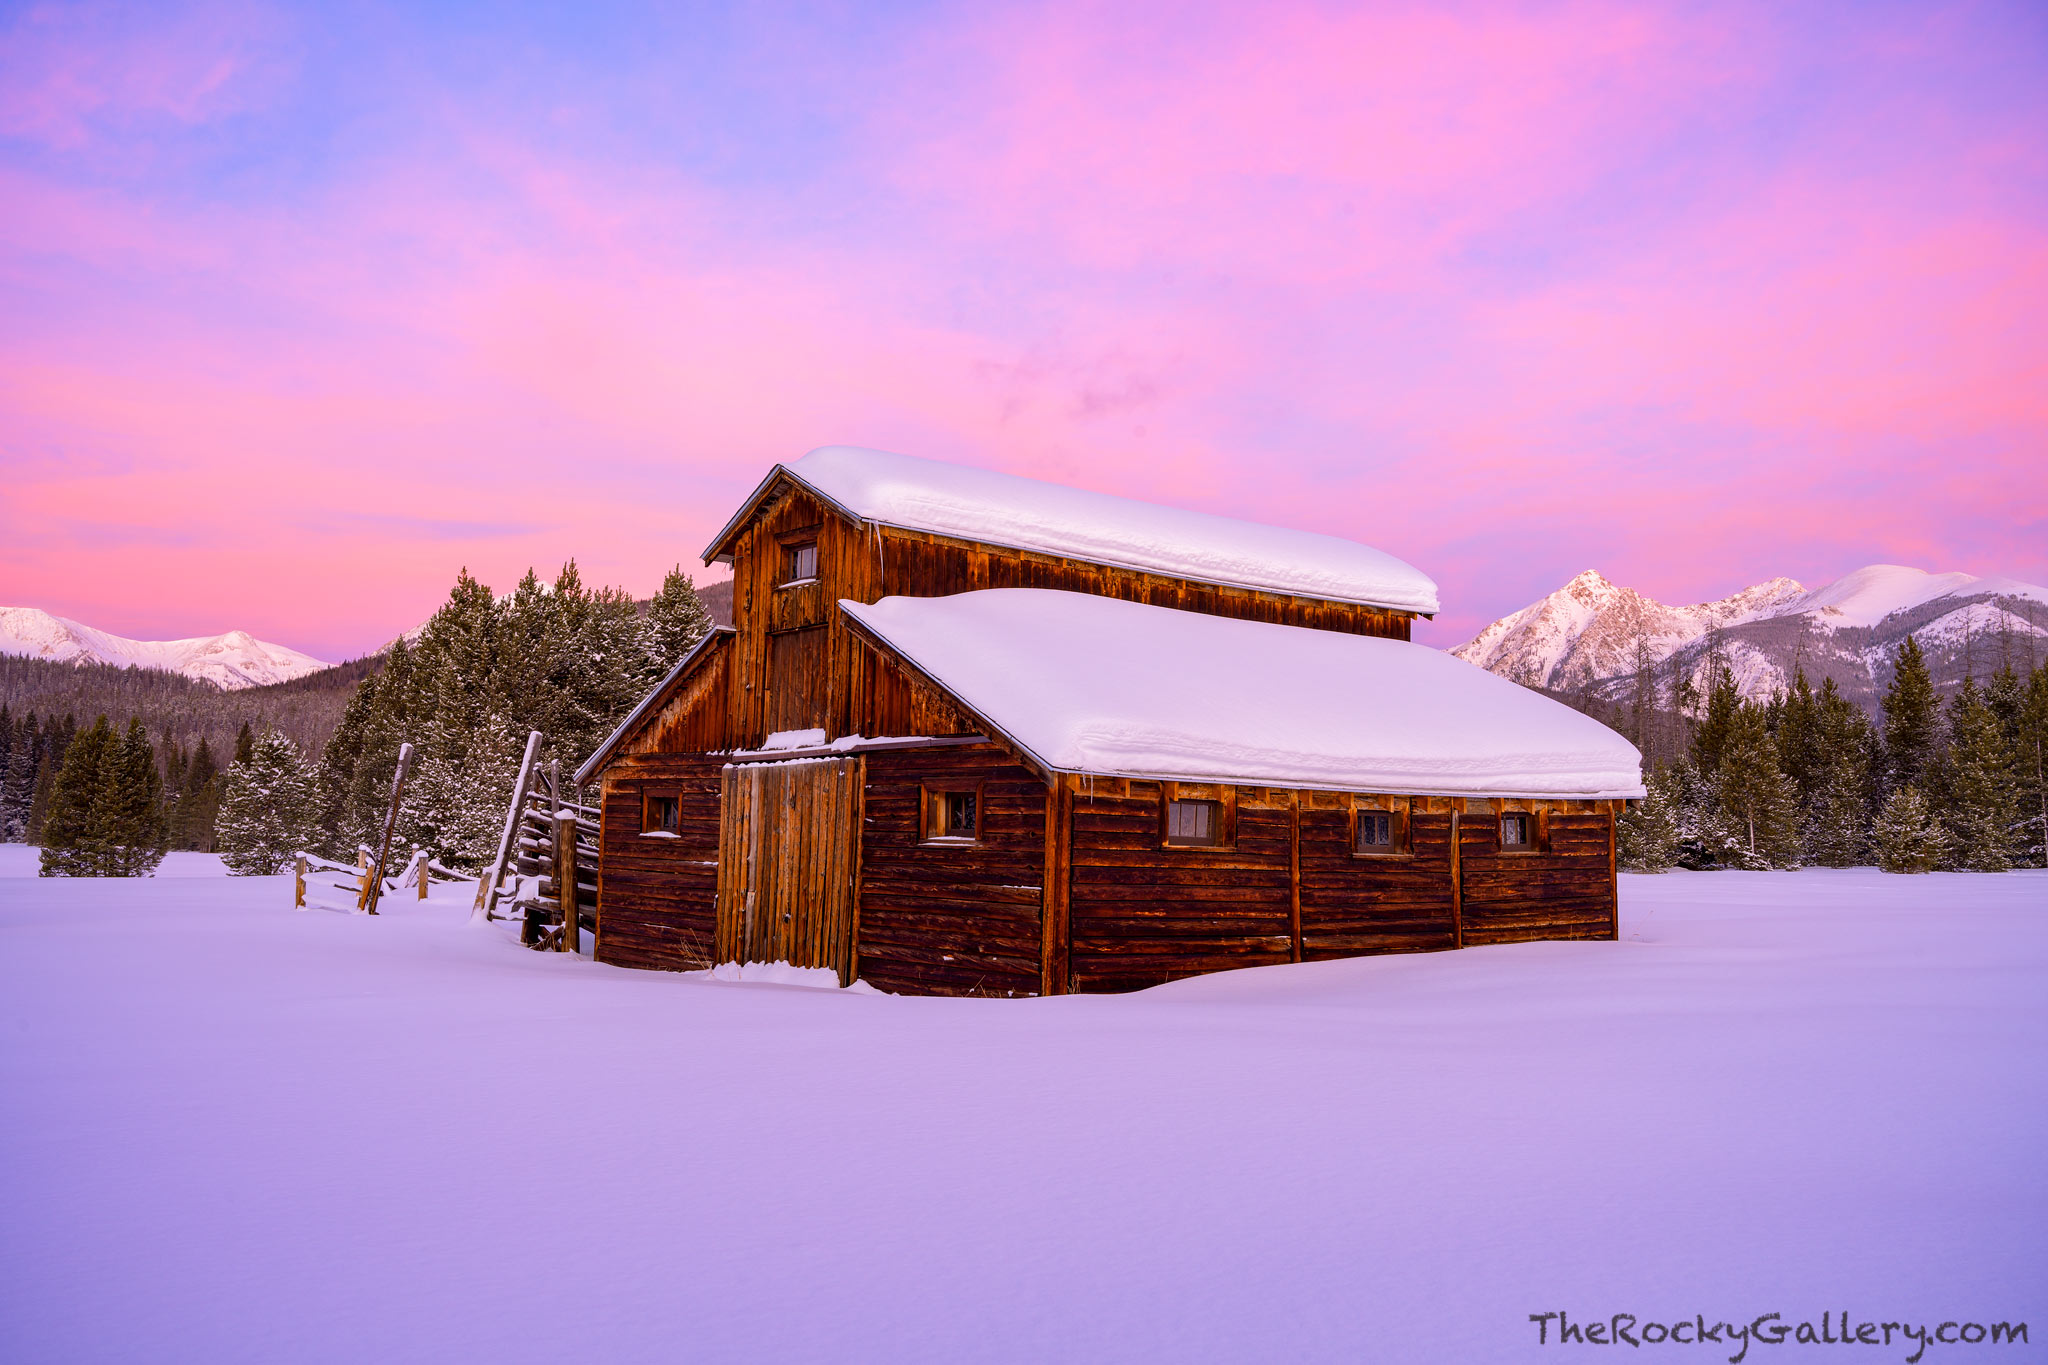 Trail River Ranch,Hand Of Man,Little Buckaroo Barn,Grand Lake,Trail Ridge Road,Kawuneeche Valley,January,Sunrise,Never Summer Mountains,Baker Mountain,Barn,Snow,pinks,RMNP,Landscape,Photography,Colora, photo